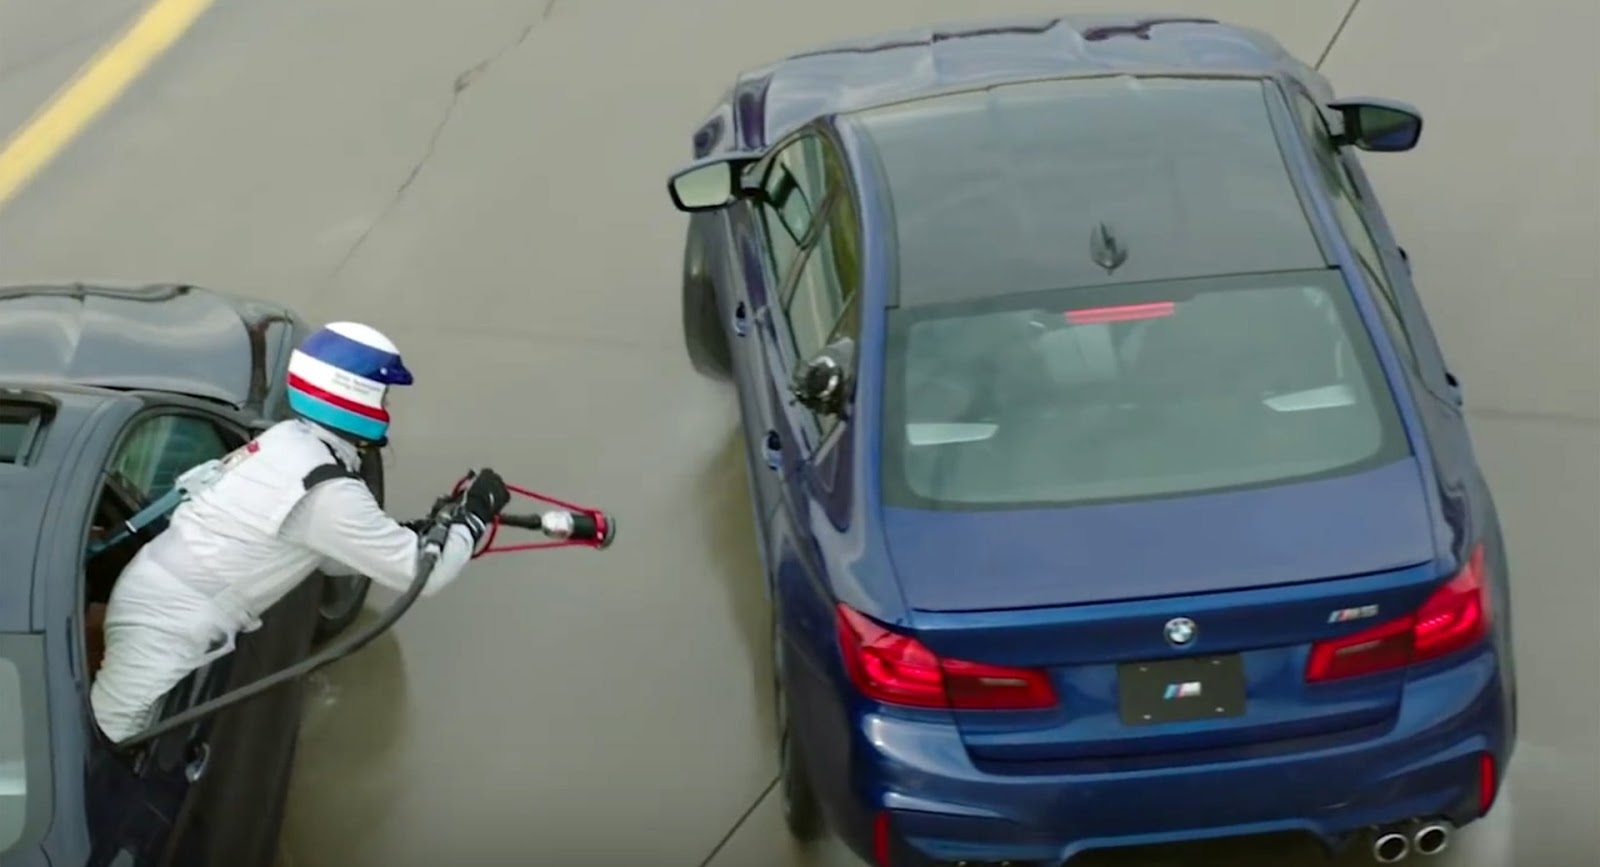 BMW M5 Shatters Longest Vehicle Drift Record: 232.5 Miles